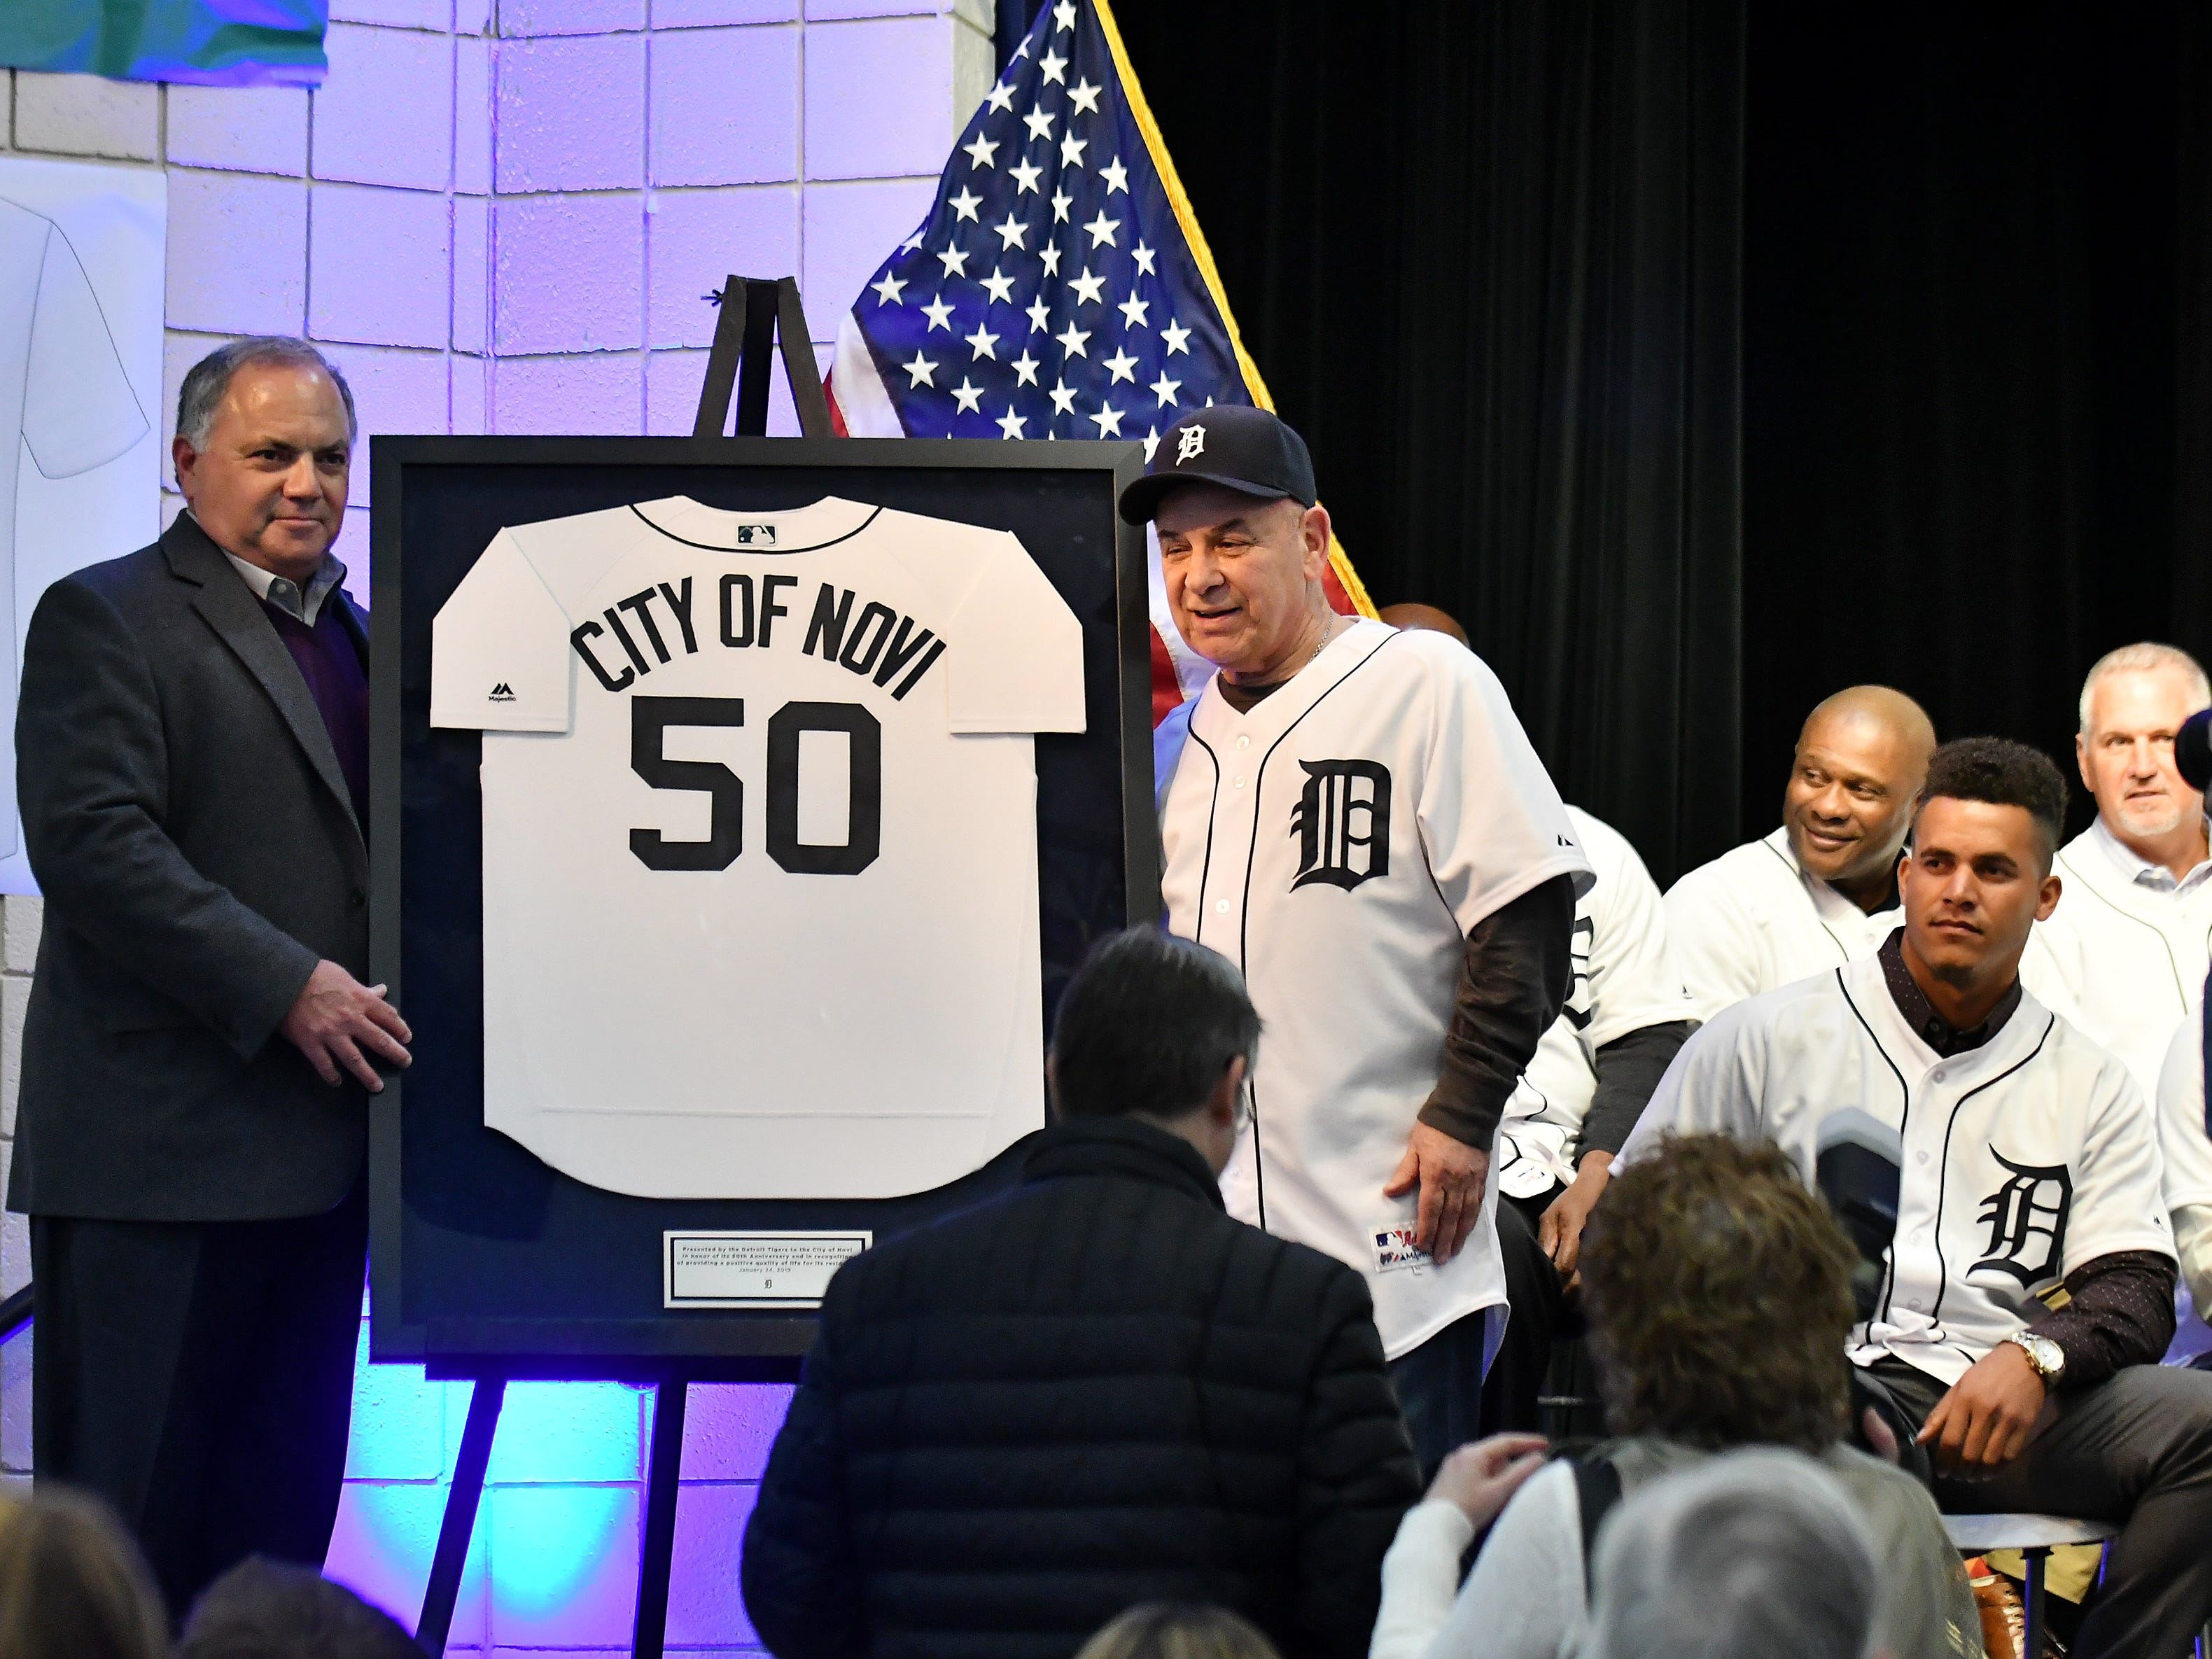 Tigers executive vice president of baseball operations and general manager Al Avila, left, and Novi mayor Bob Gatt with a jersey gift from the Tigers at the Novi Civic Center.